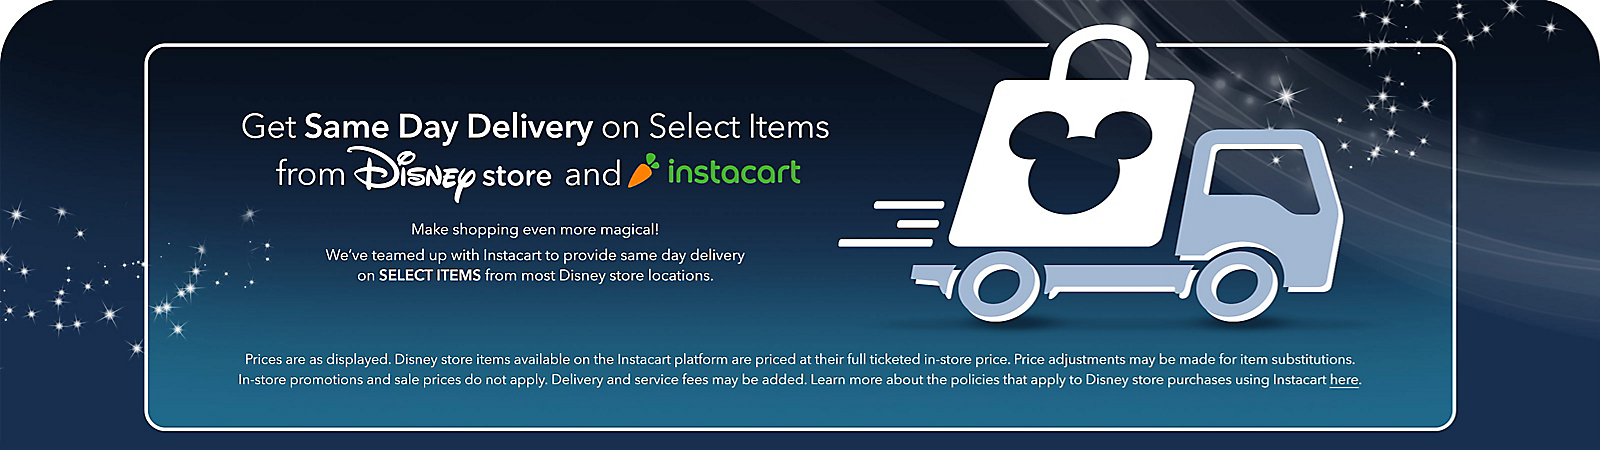 Get Same Day Delivery on Select Items from Disney Store Make shopping even more magical! We've teamed up with Instacart to provide same day delivery on select items from most Disney store locations.  Prices are generally as ticketed on items, but delivery and service fees may be added. shopDisney.com and Disney store discounts, promotions, coupons and gift cards are not valid for Instacart purchases.